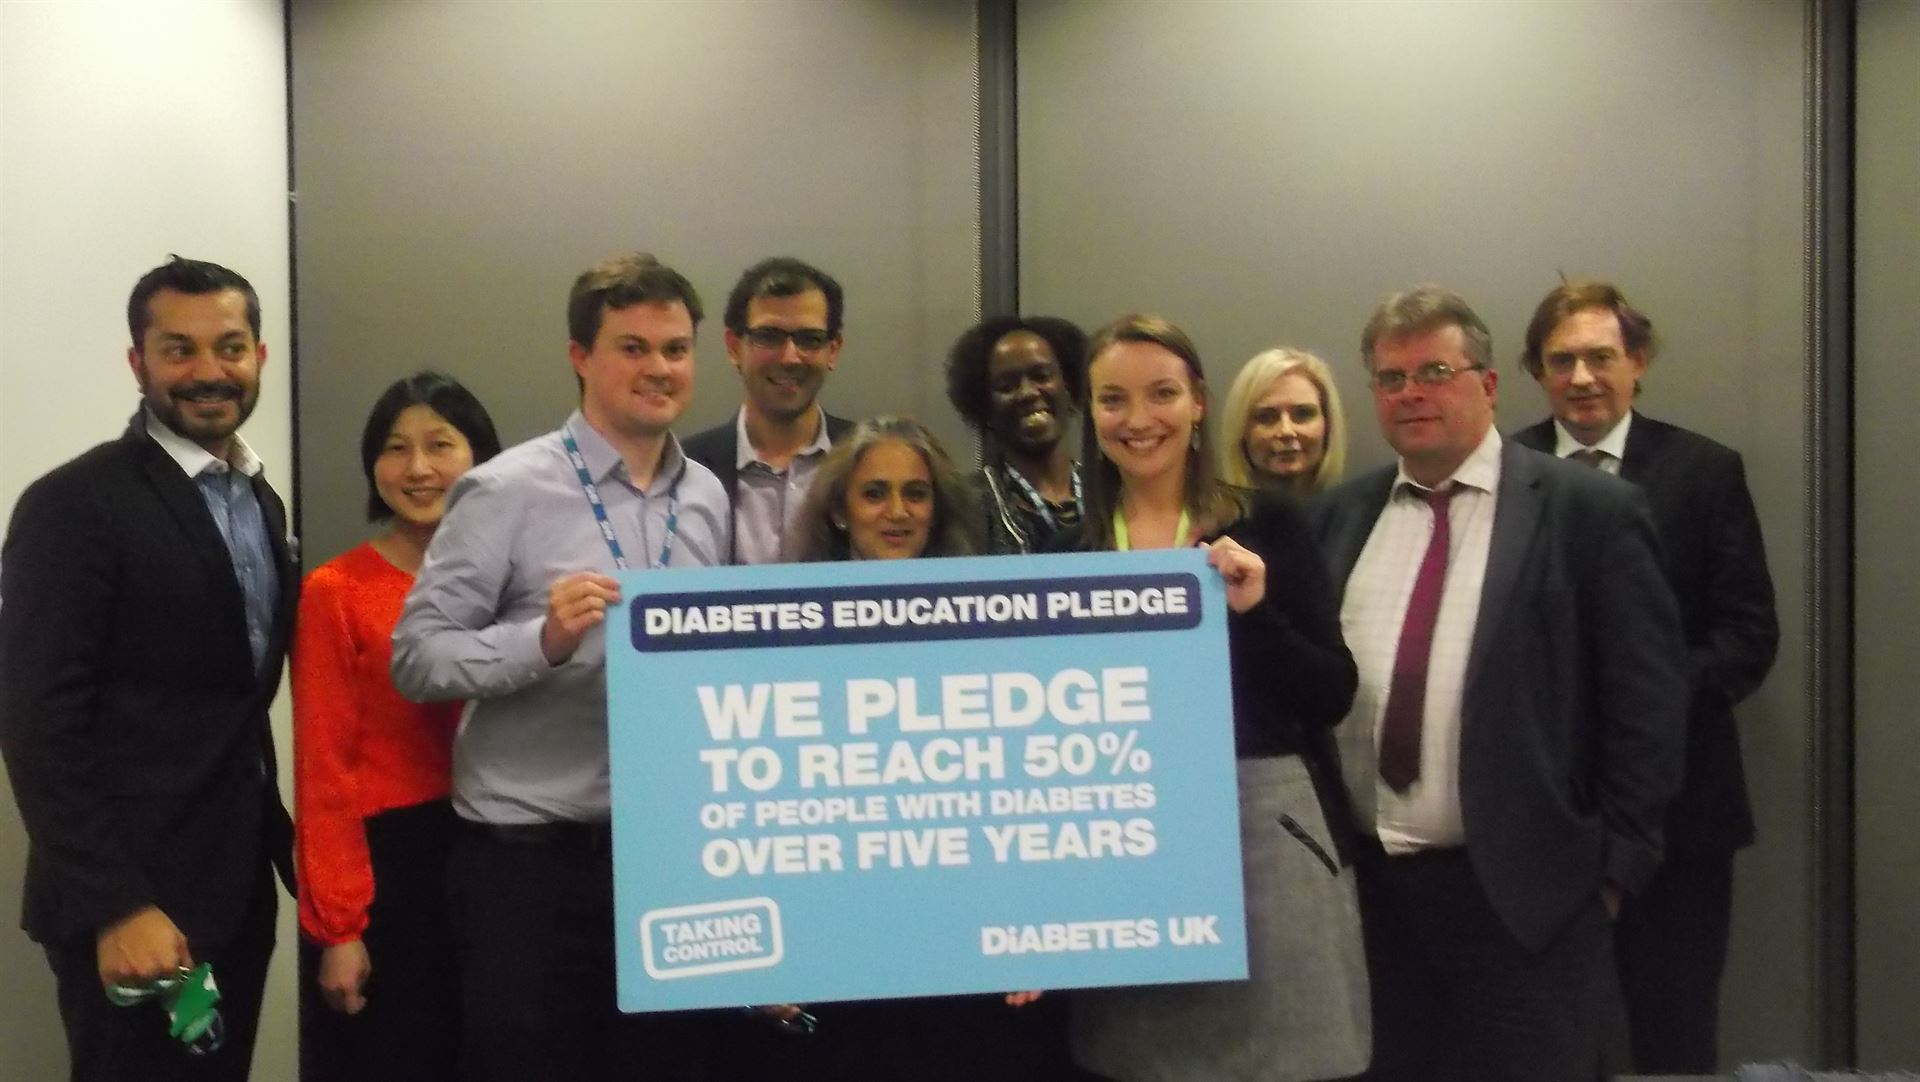 Croydon%20Education%20pledge%201%20nov16.JPG